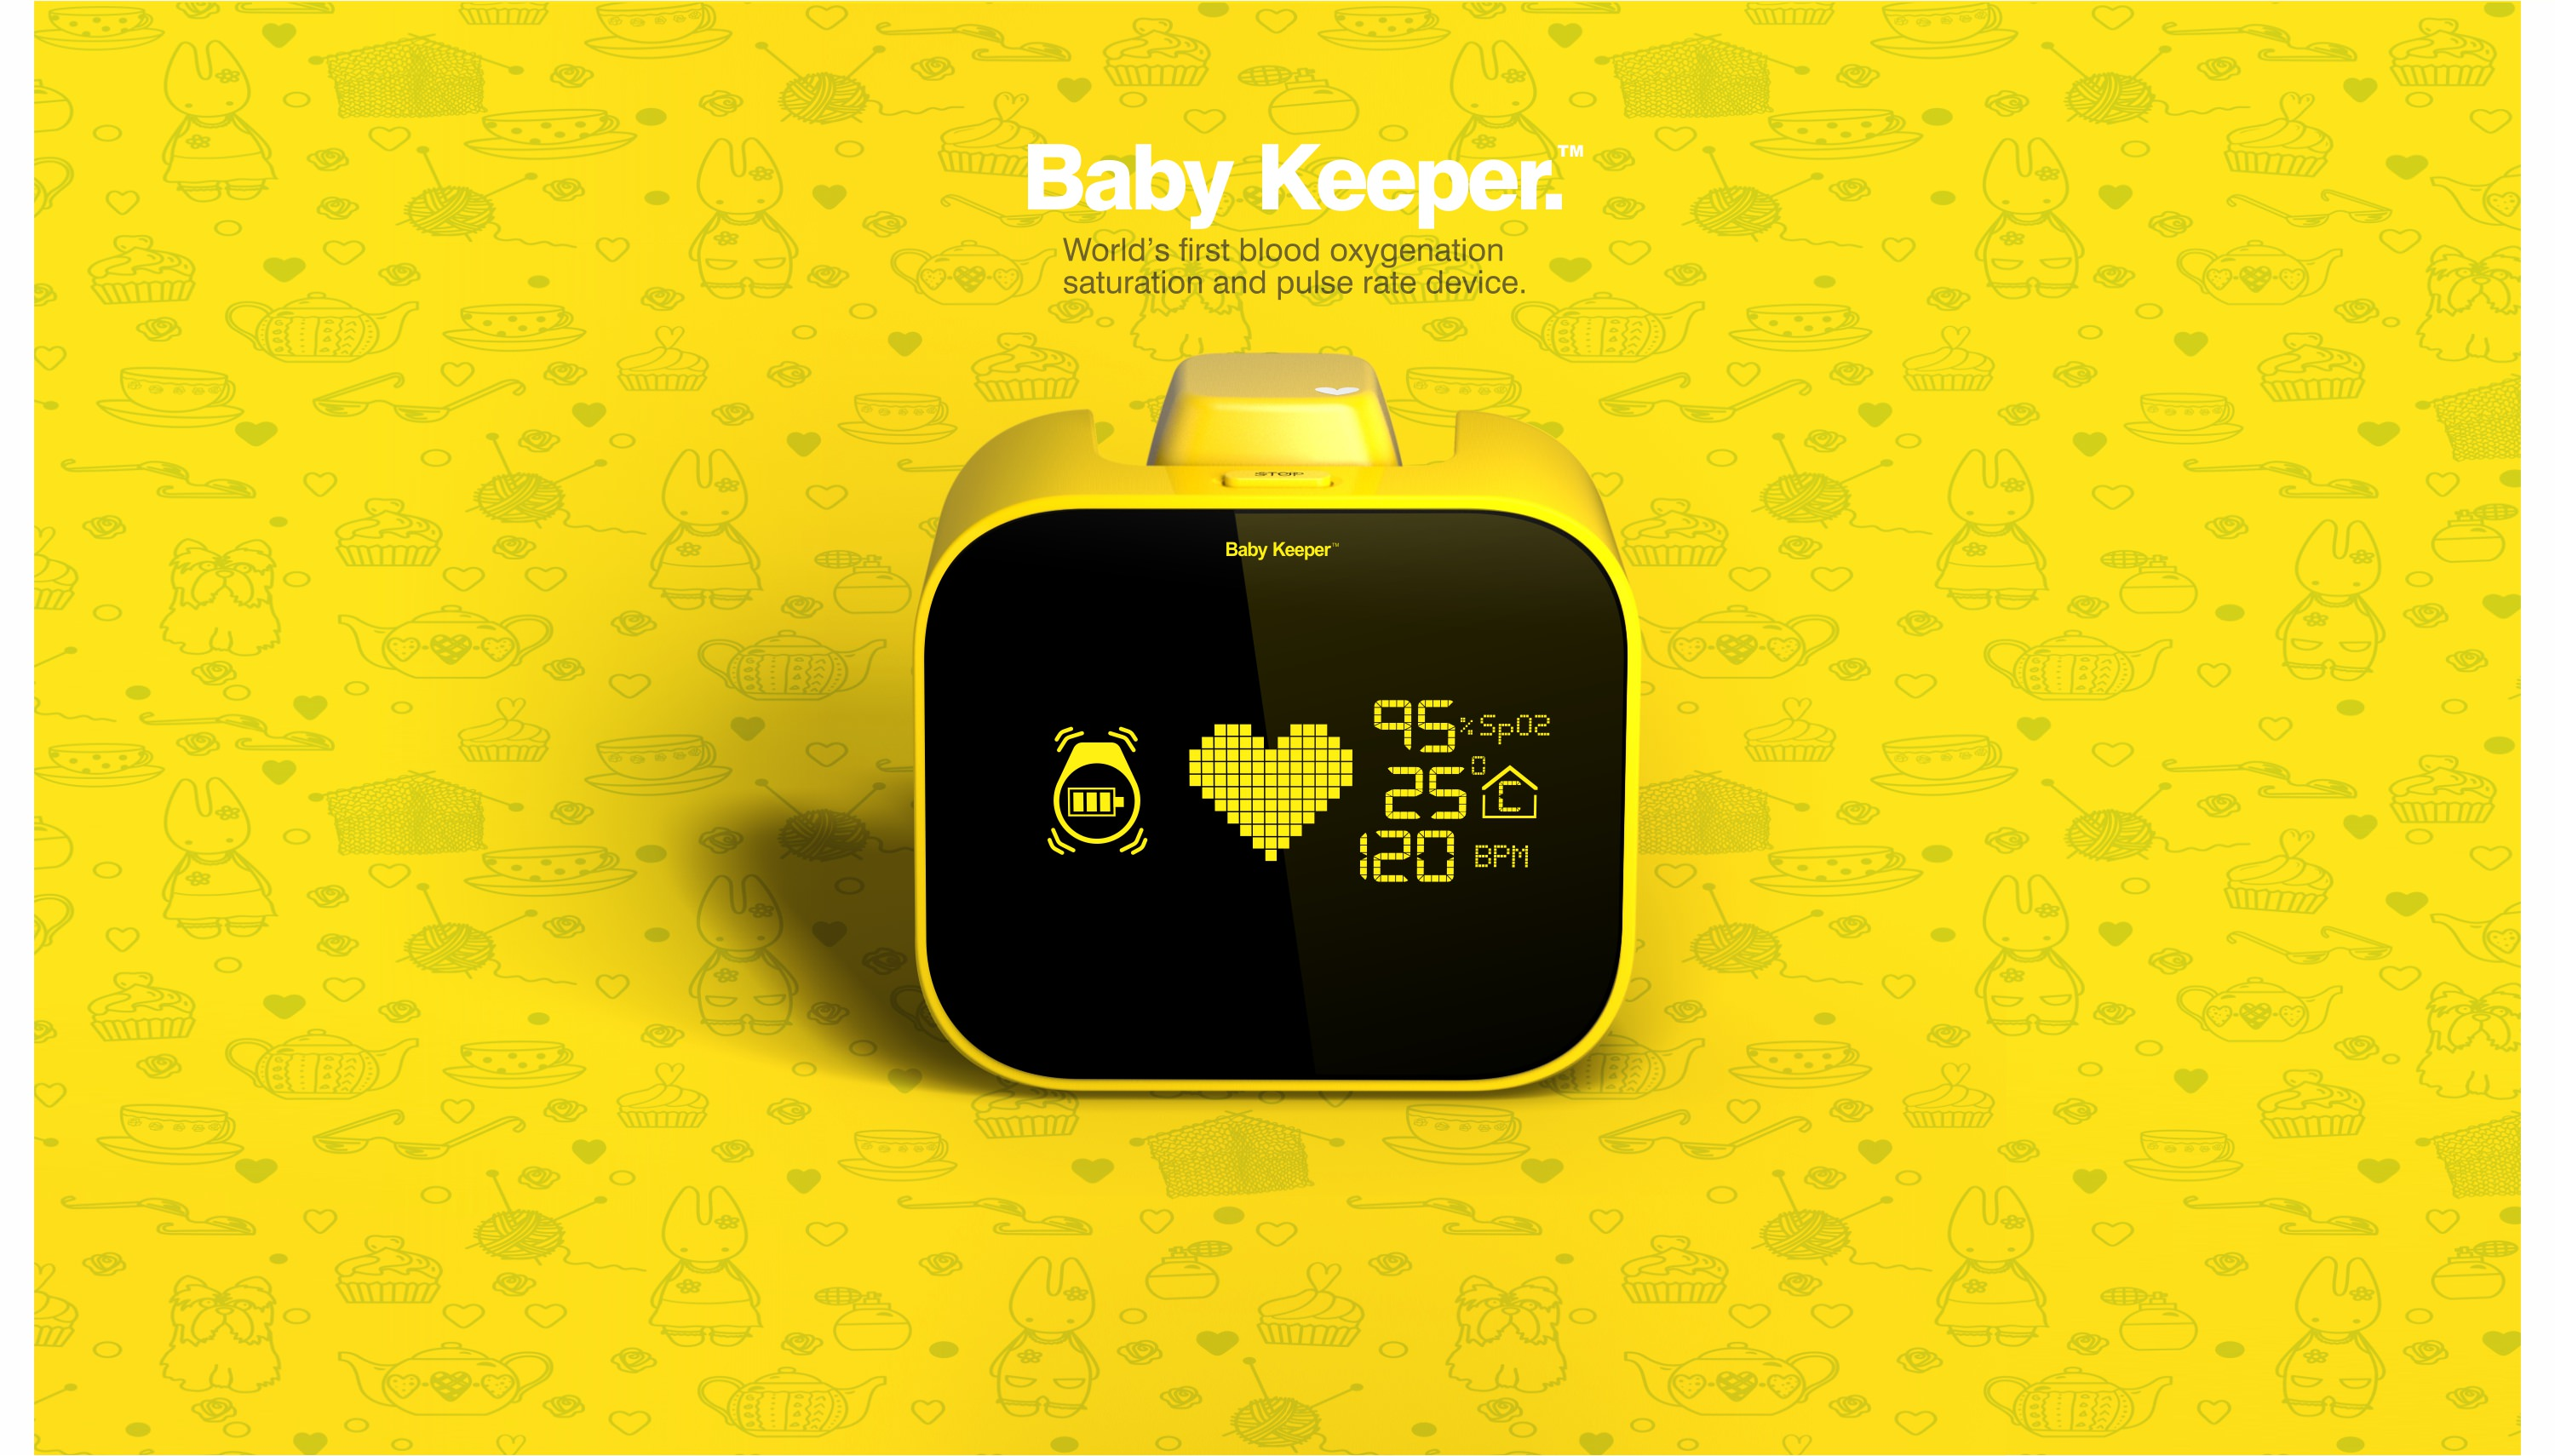 BABYKEEPER PROJECT01